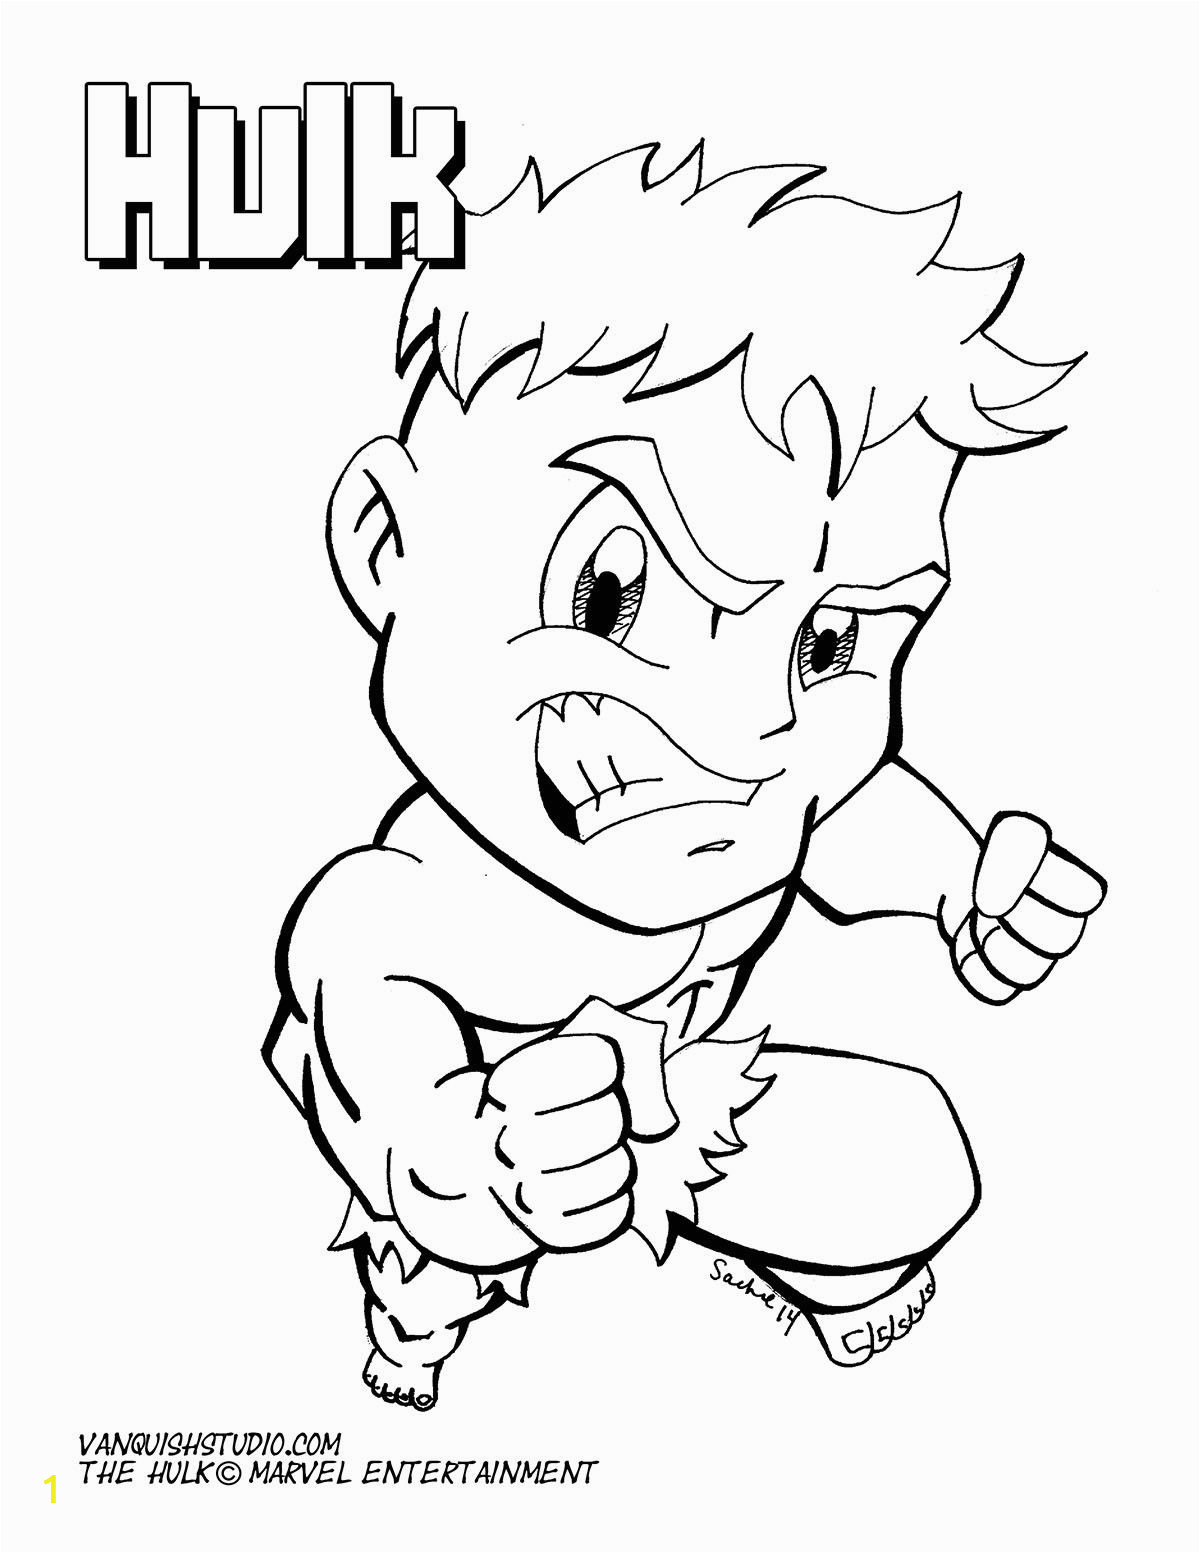 Hulk Coloring Pages Online Games Superhero Coloring Pages with Images